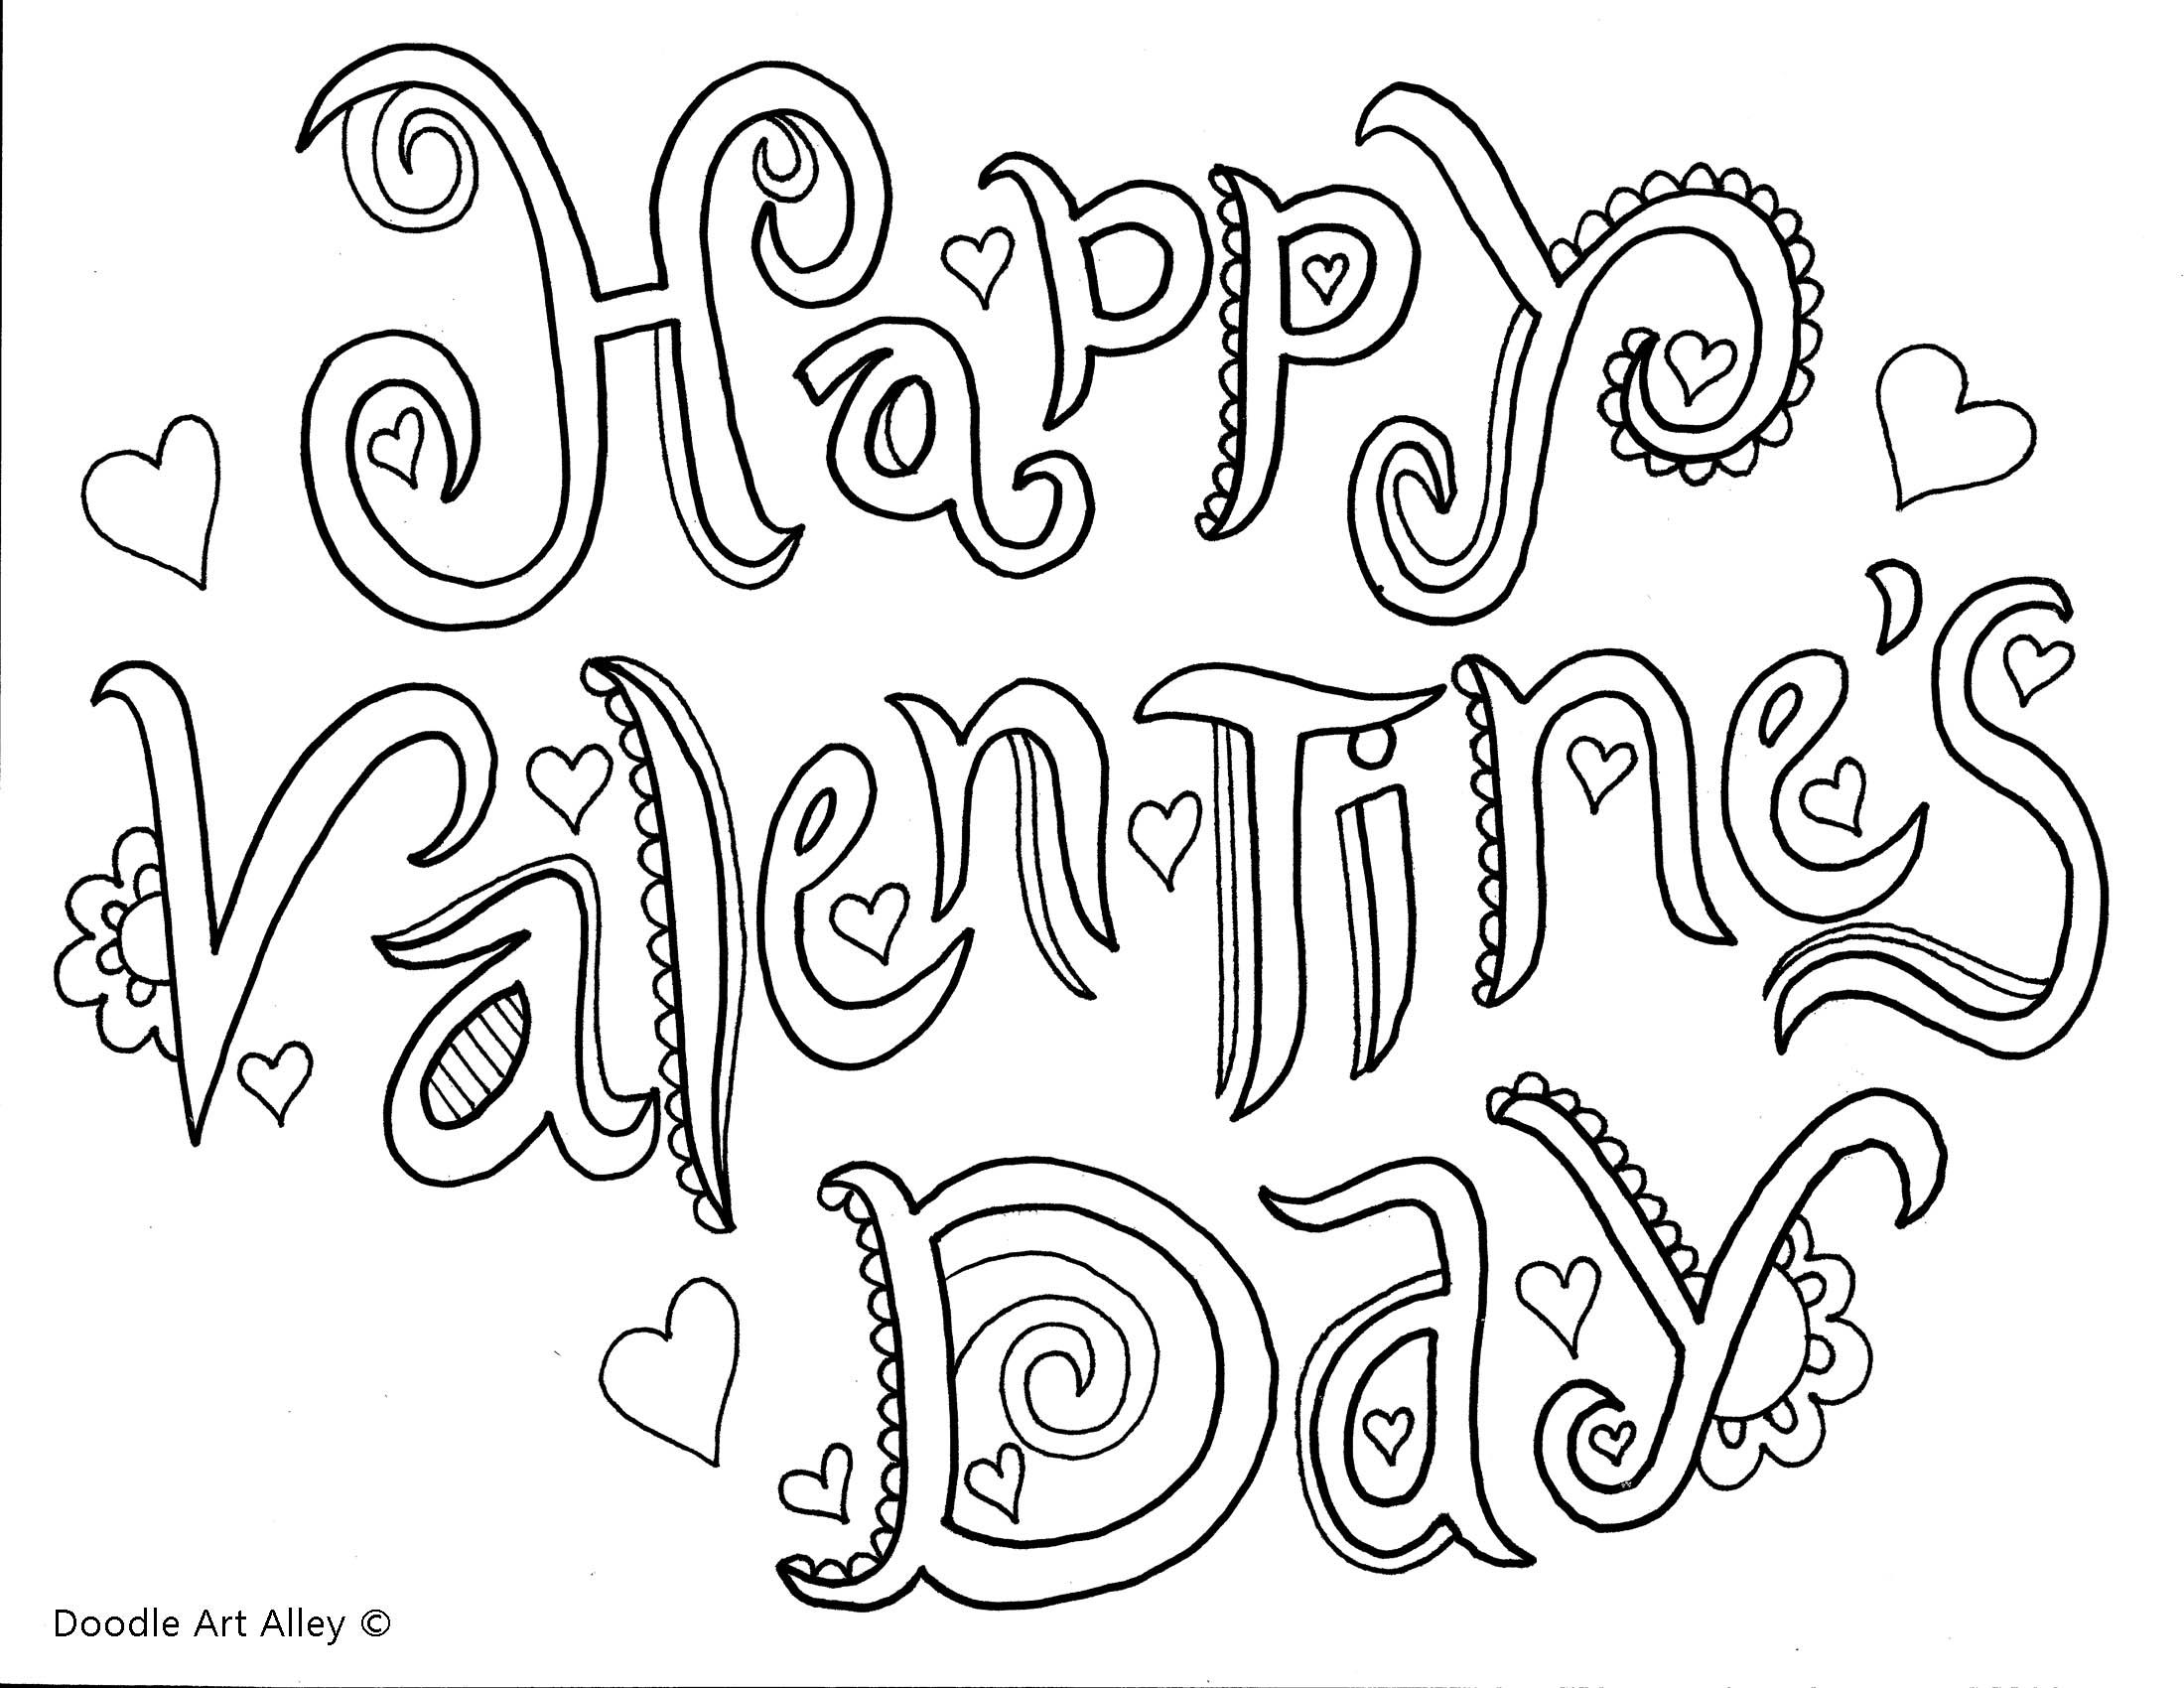 free valentines day text coloring page for adults - Valentines Day Coloring Pages For Adults